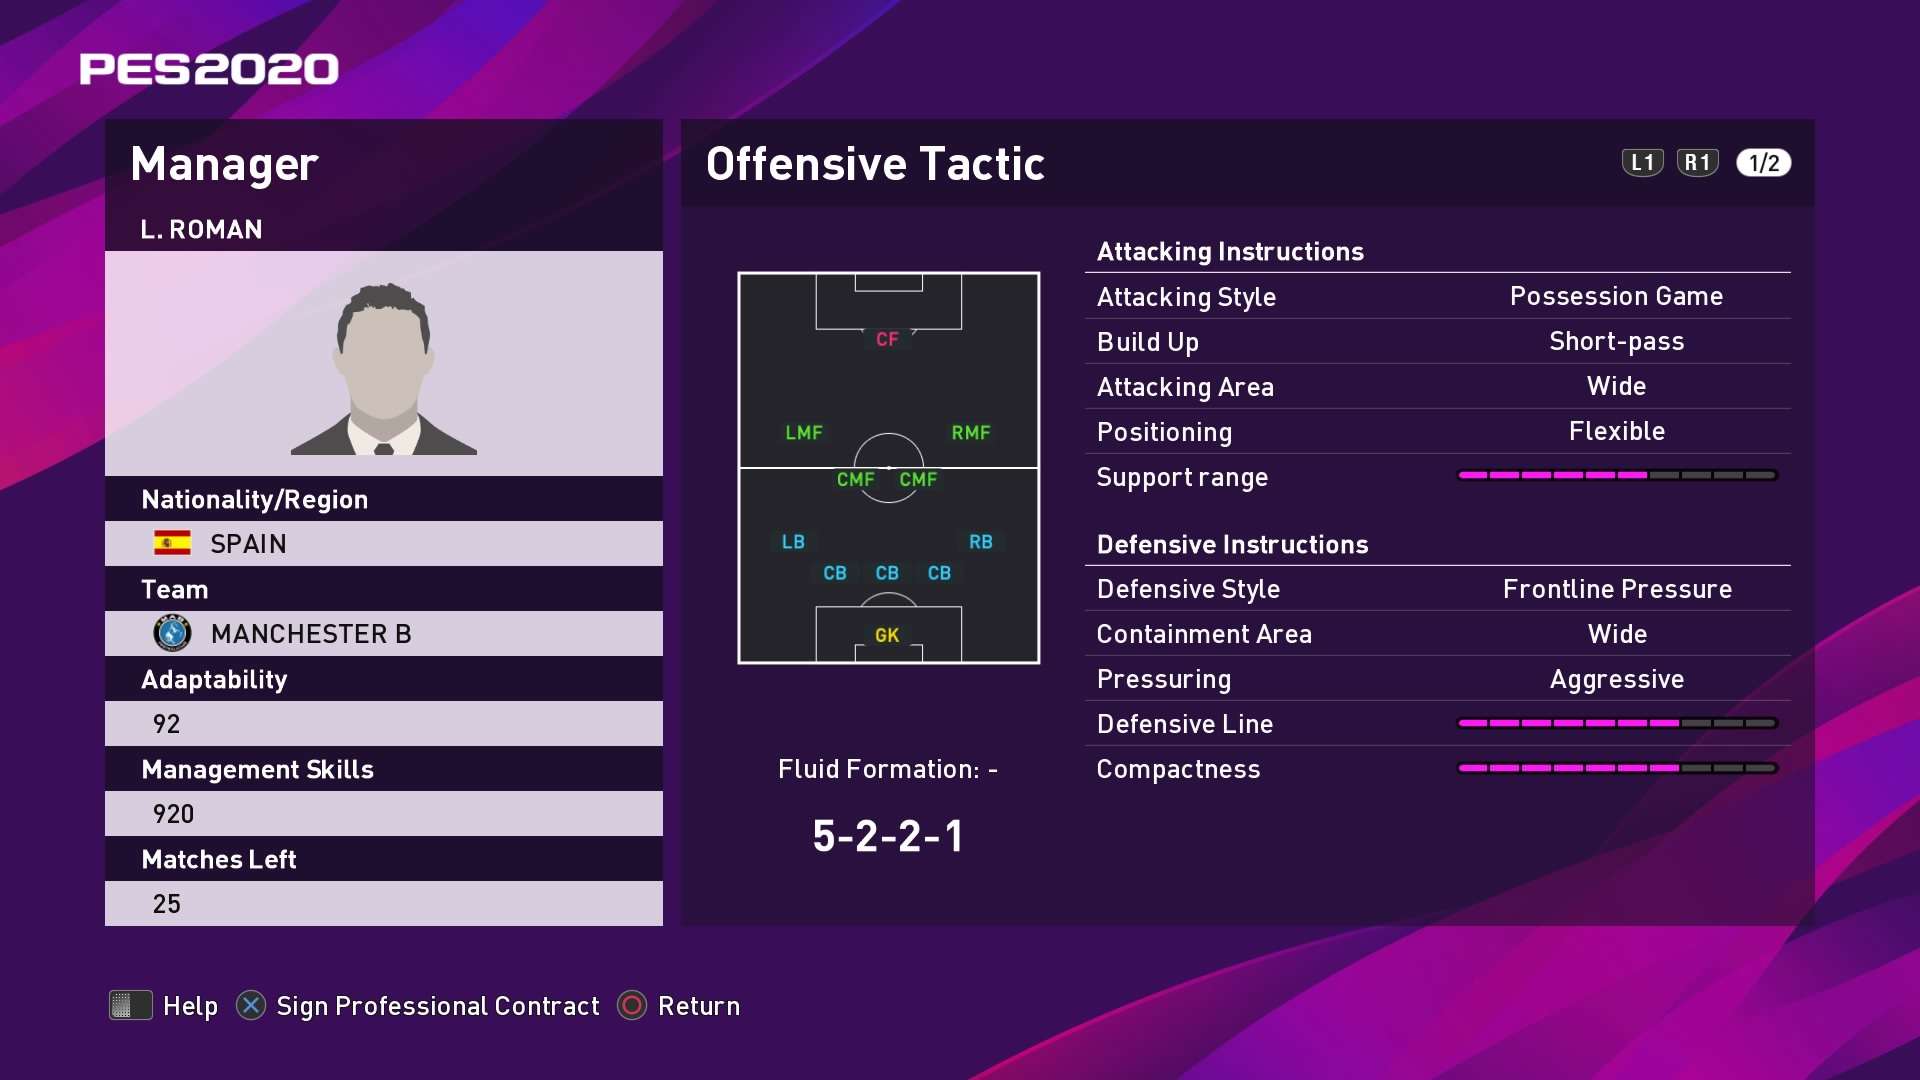 L. Roman (Pep Guardiola) Offensive Tactic in PES 2020 myClub